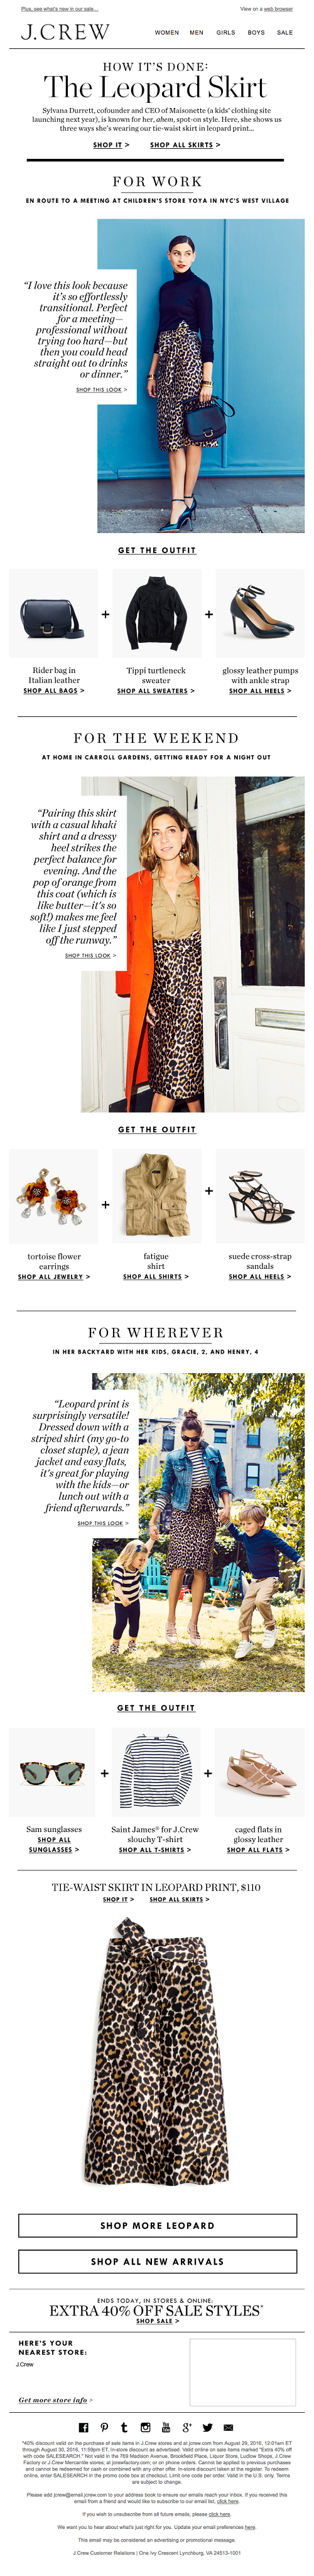 J. Crew promotional email